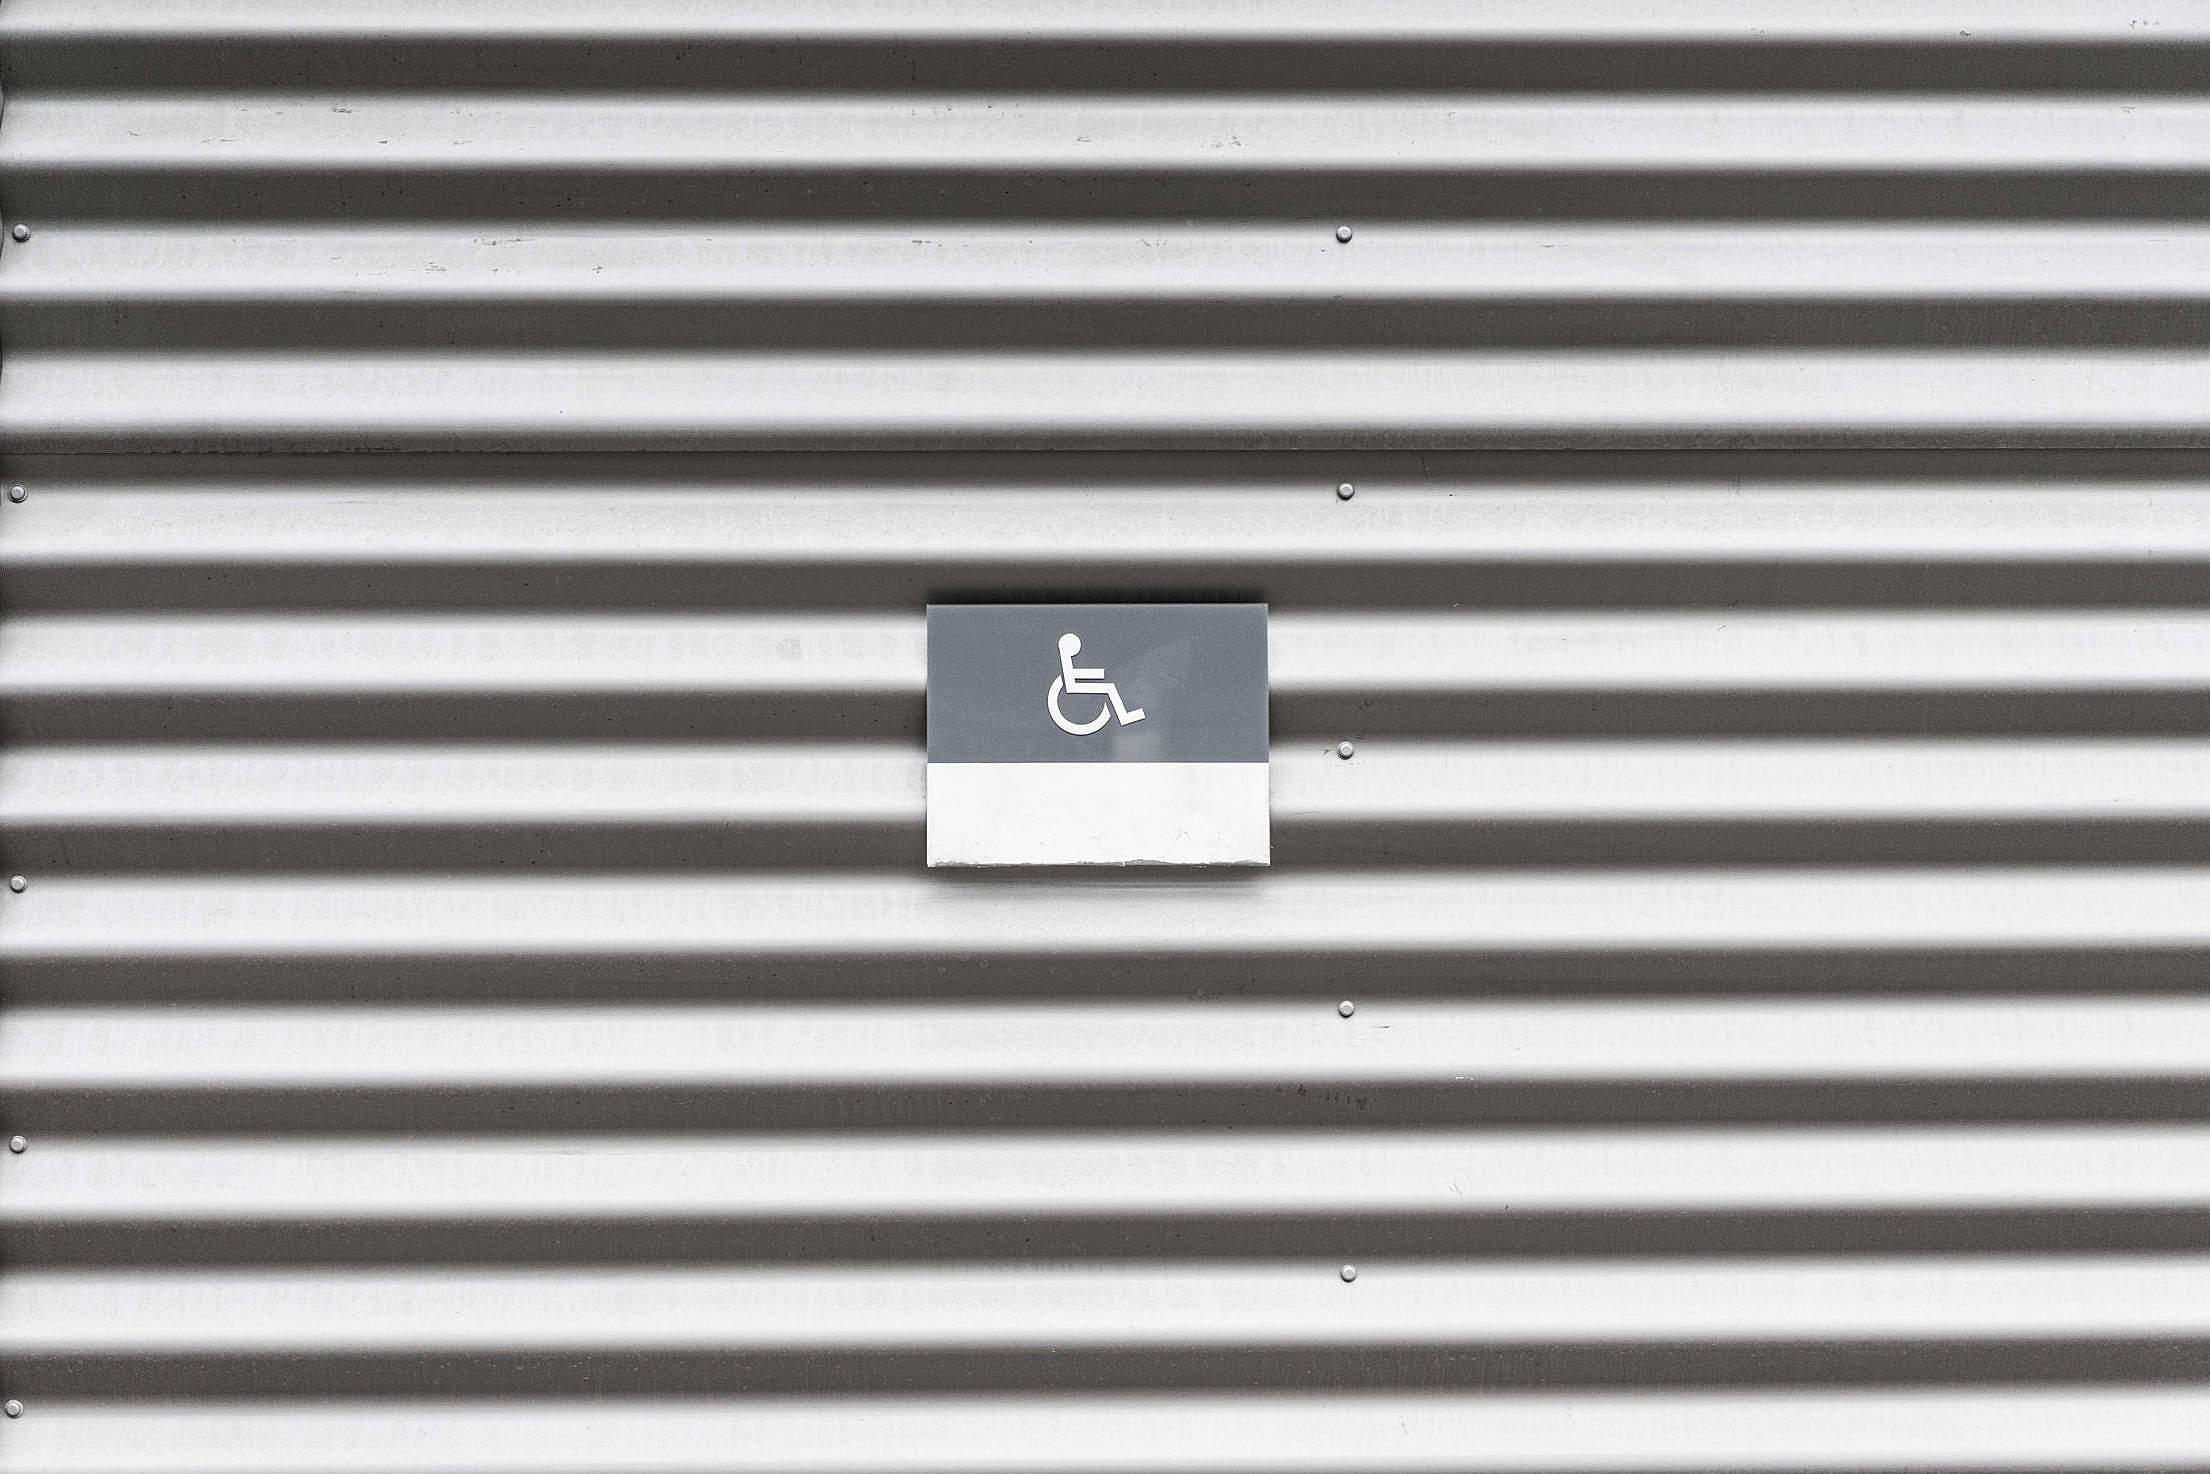 Metal Wall with Wheelchair Disabled Sign Free Stock Photo